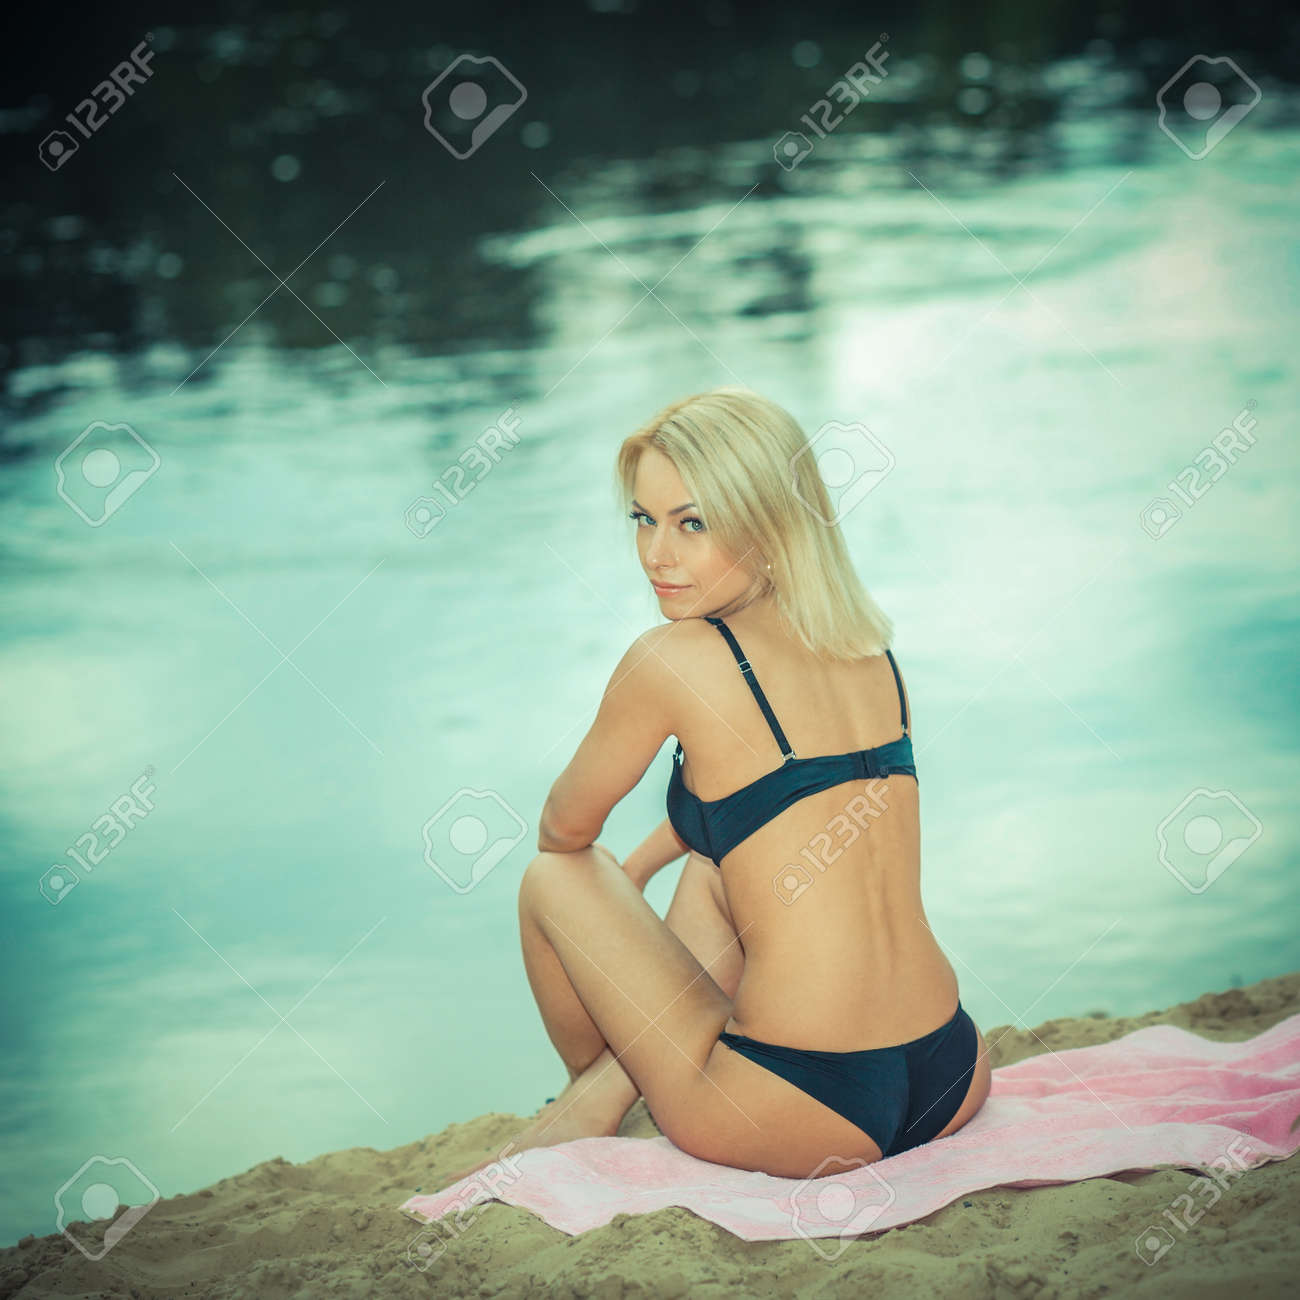 f6ff321a90d57 beautiful girl in a black bikini on the beach. Outdoor portrait of tanned girl  having